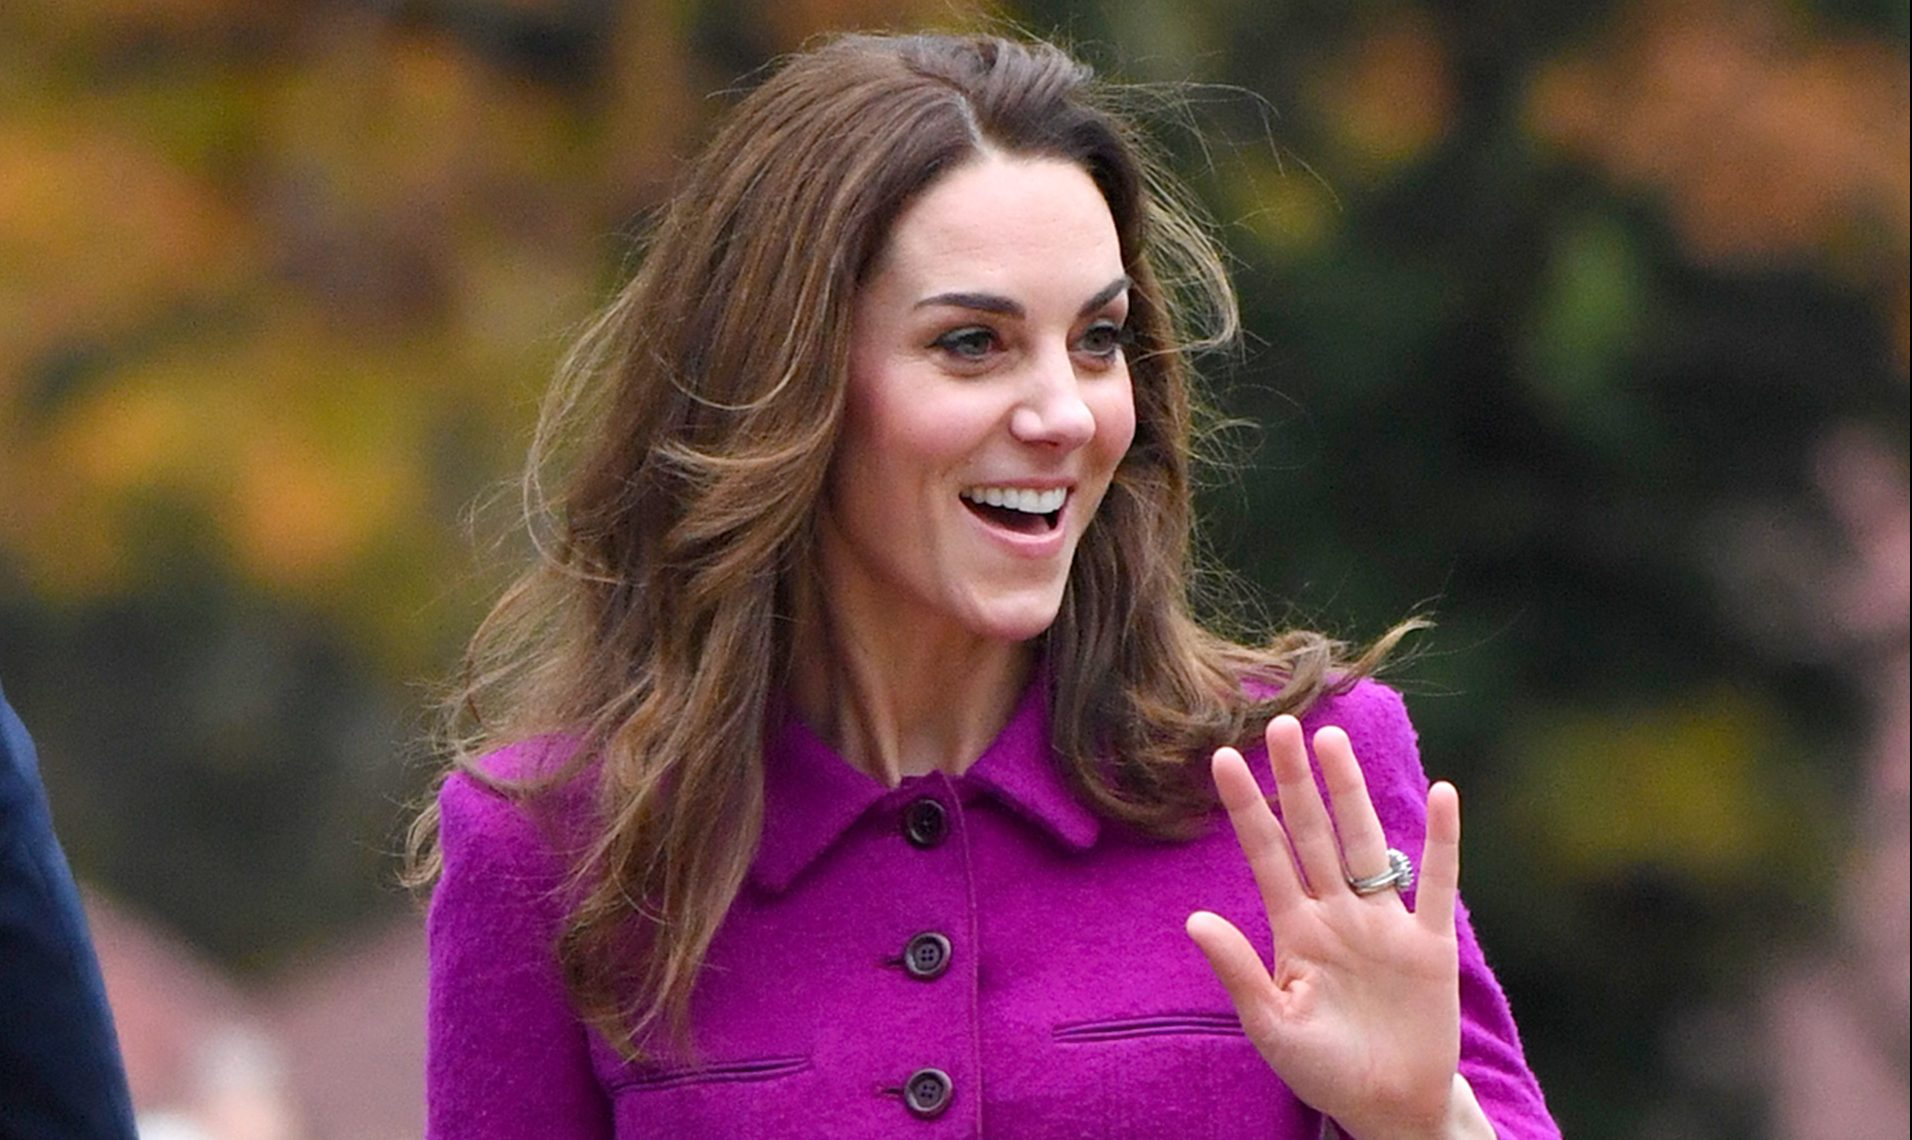 Kate stuns in recycled outfit as she takes the train to latest royal engagement